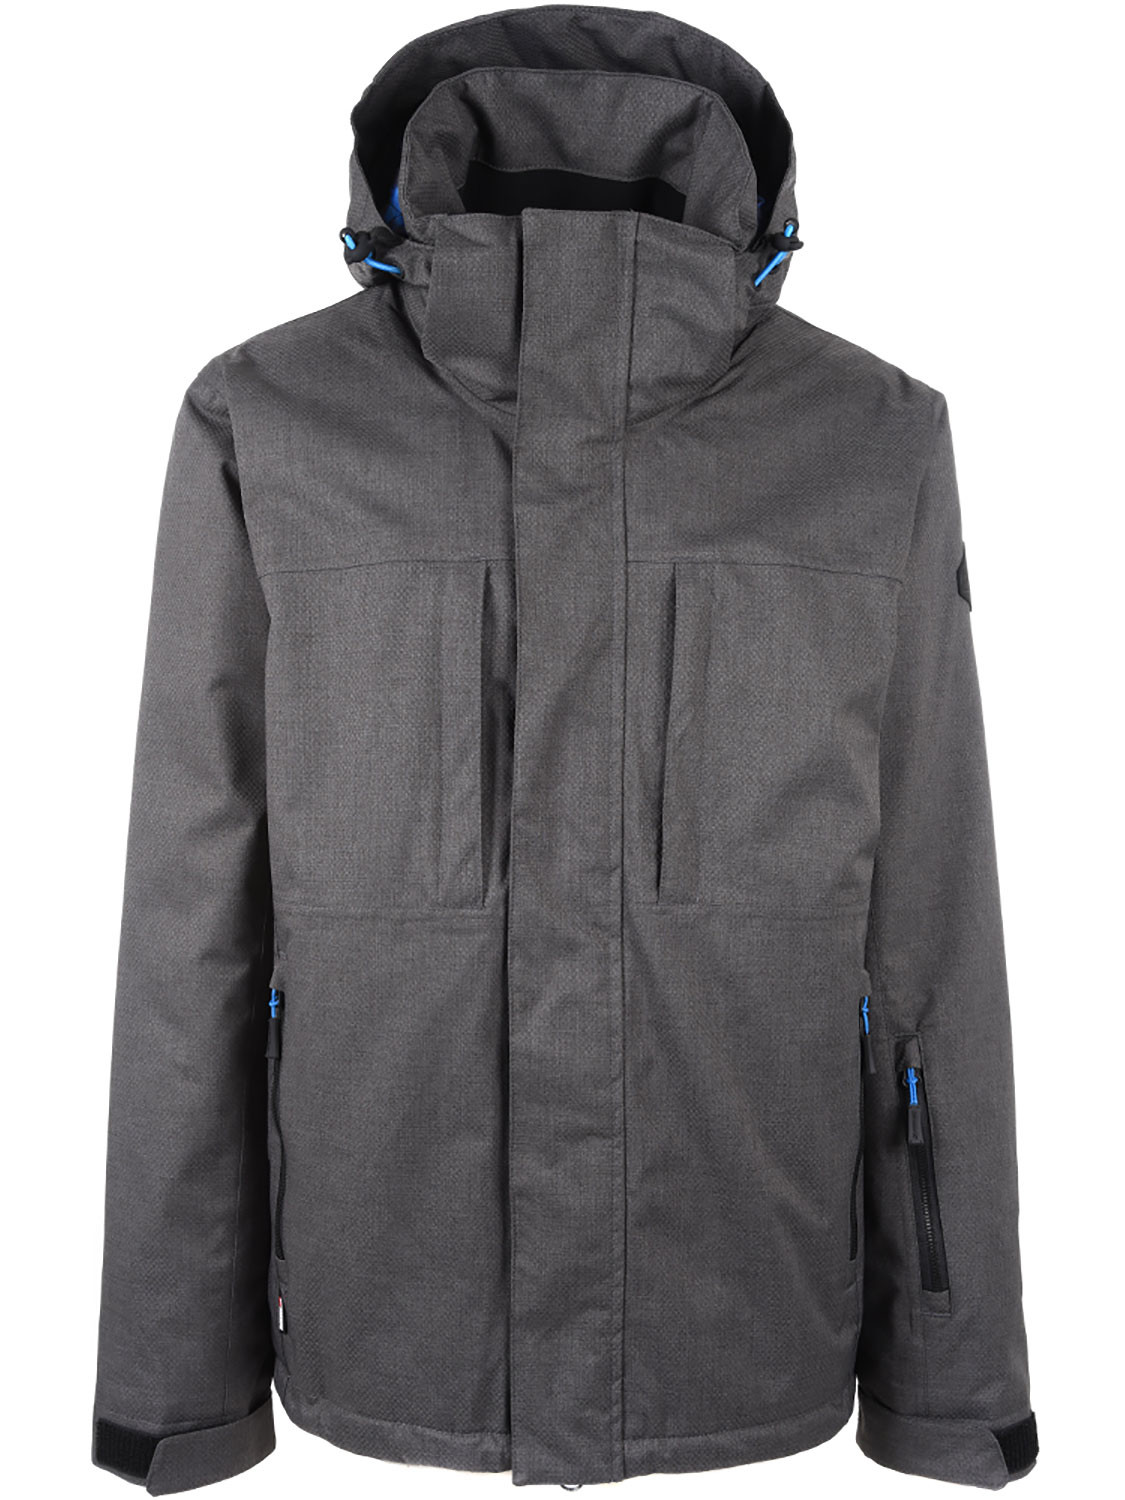 Ryder Surftex Ski Jacket